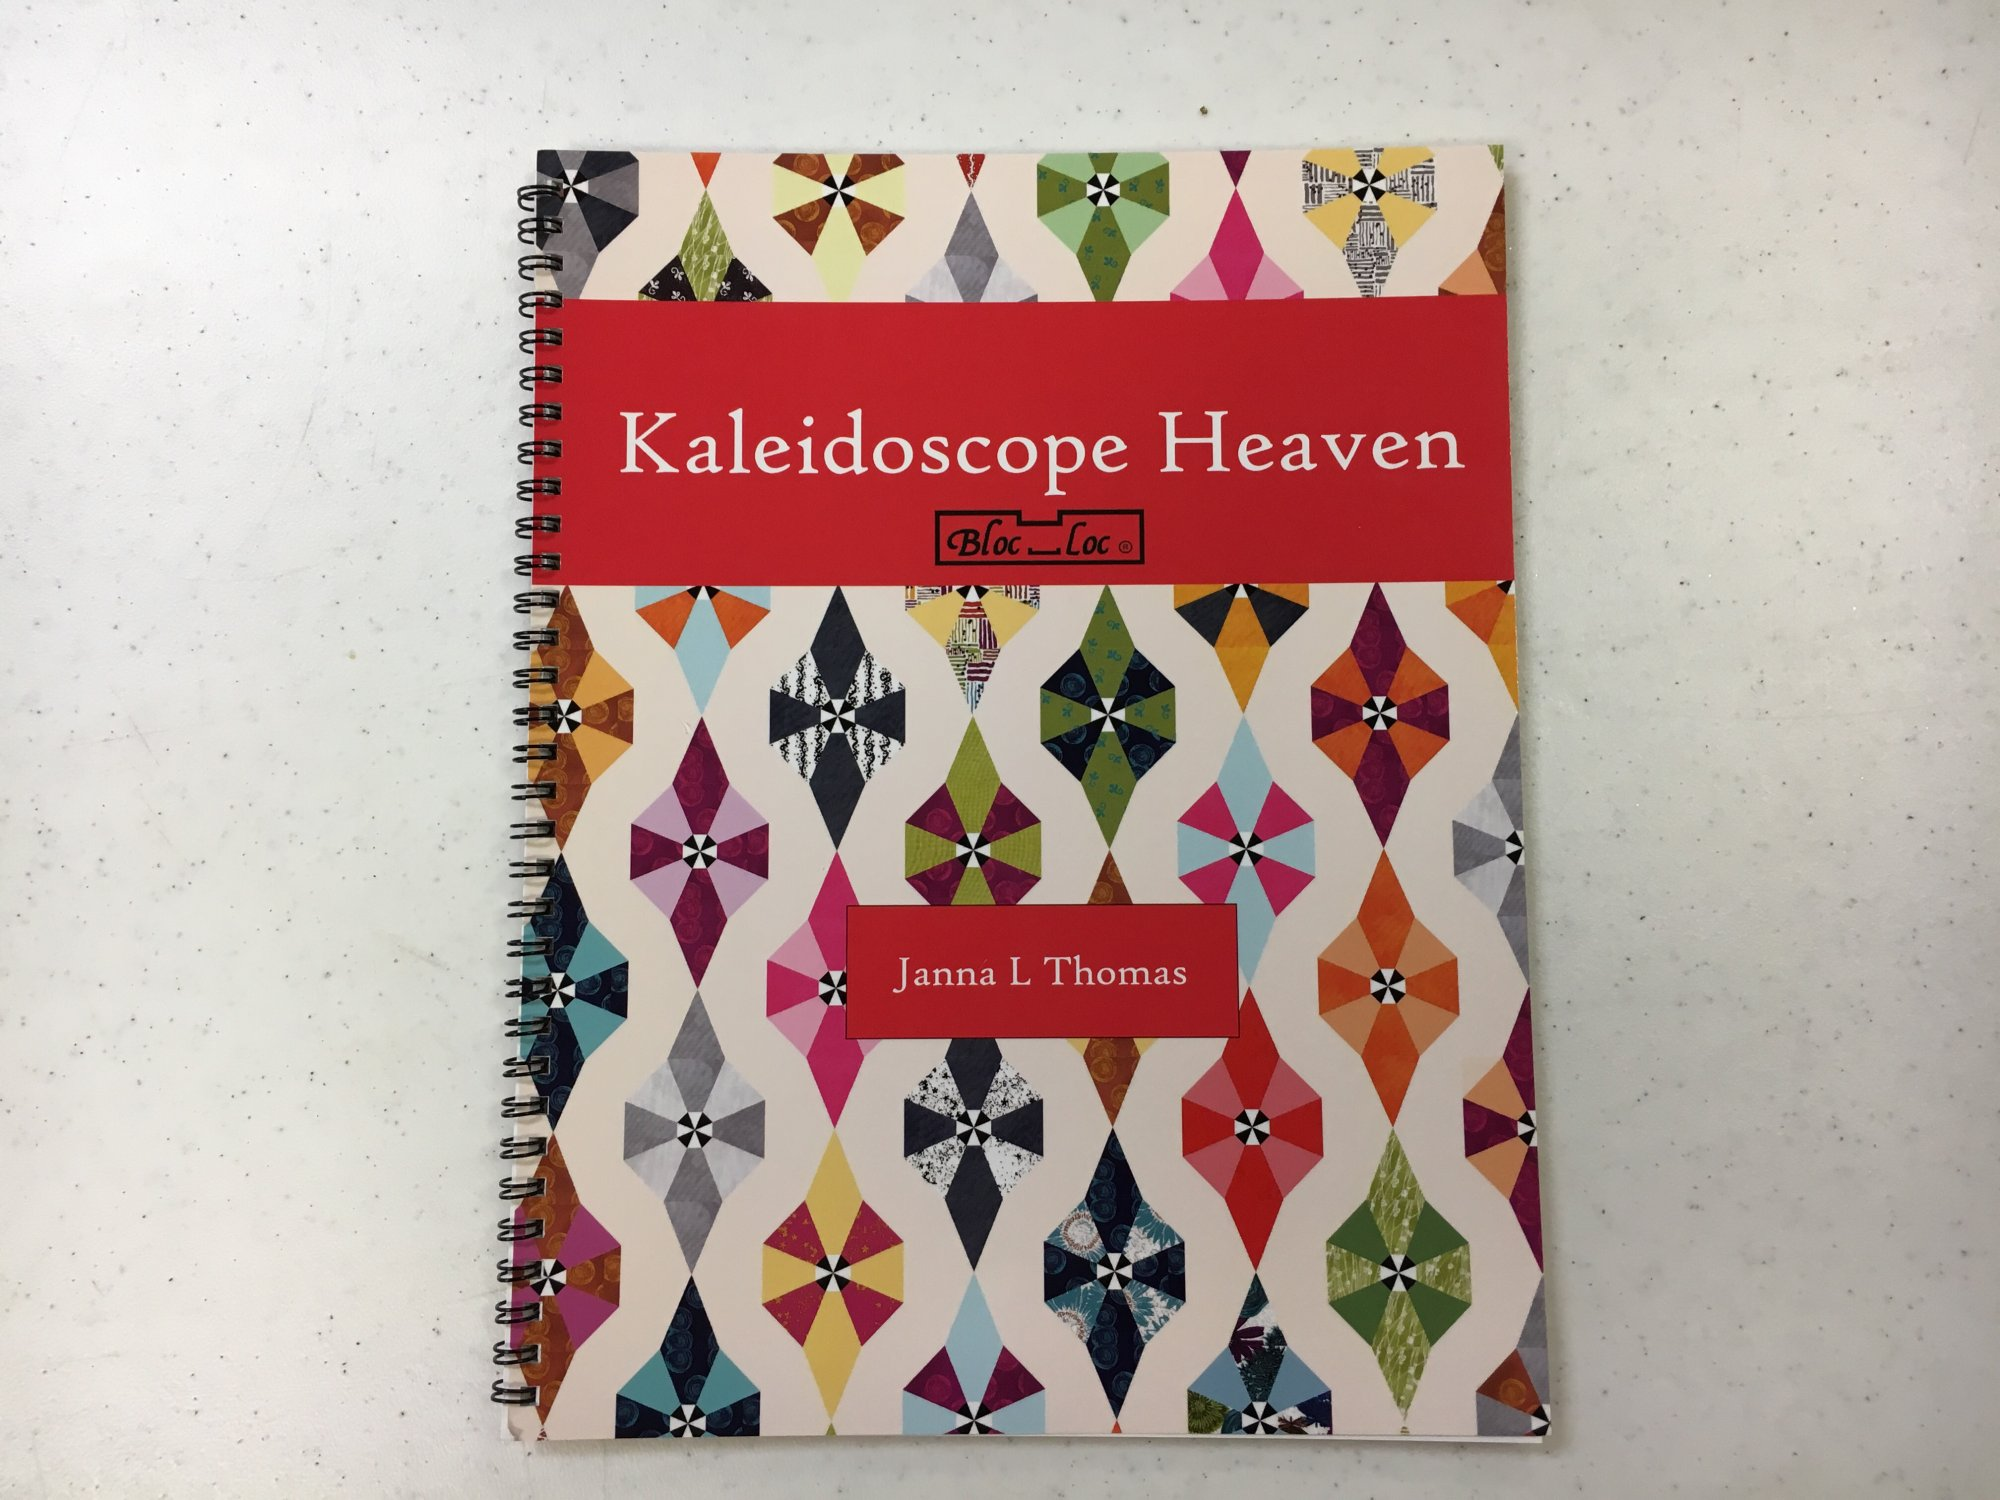 Bloc Loc; Kaleidoscope Heaven companion book